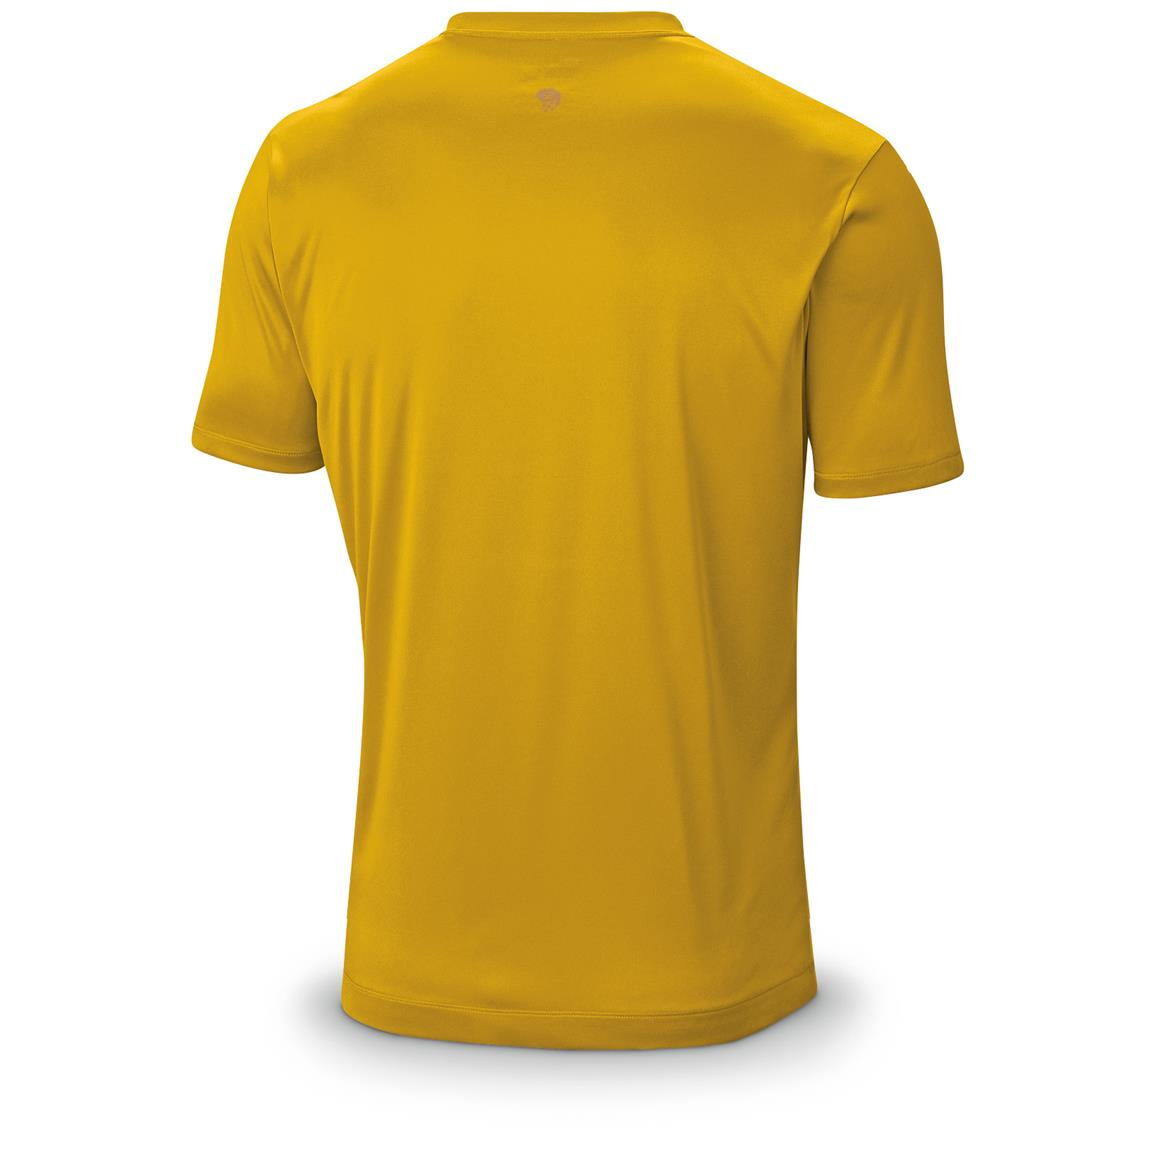 Mountain Hardwear Men's Wicked T-Shirt, Short Sleeved, Inca Gold Back